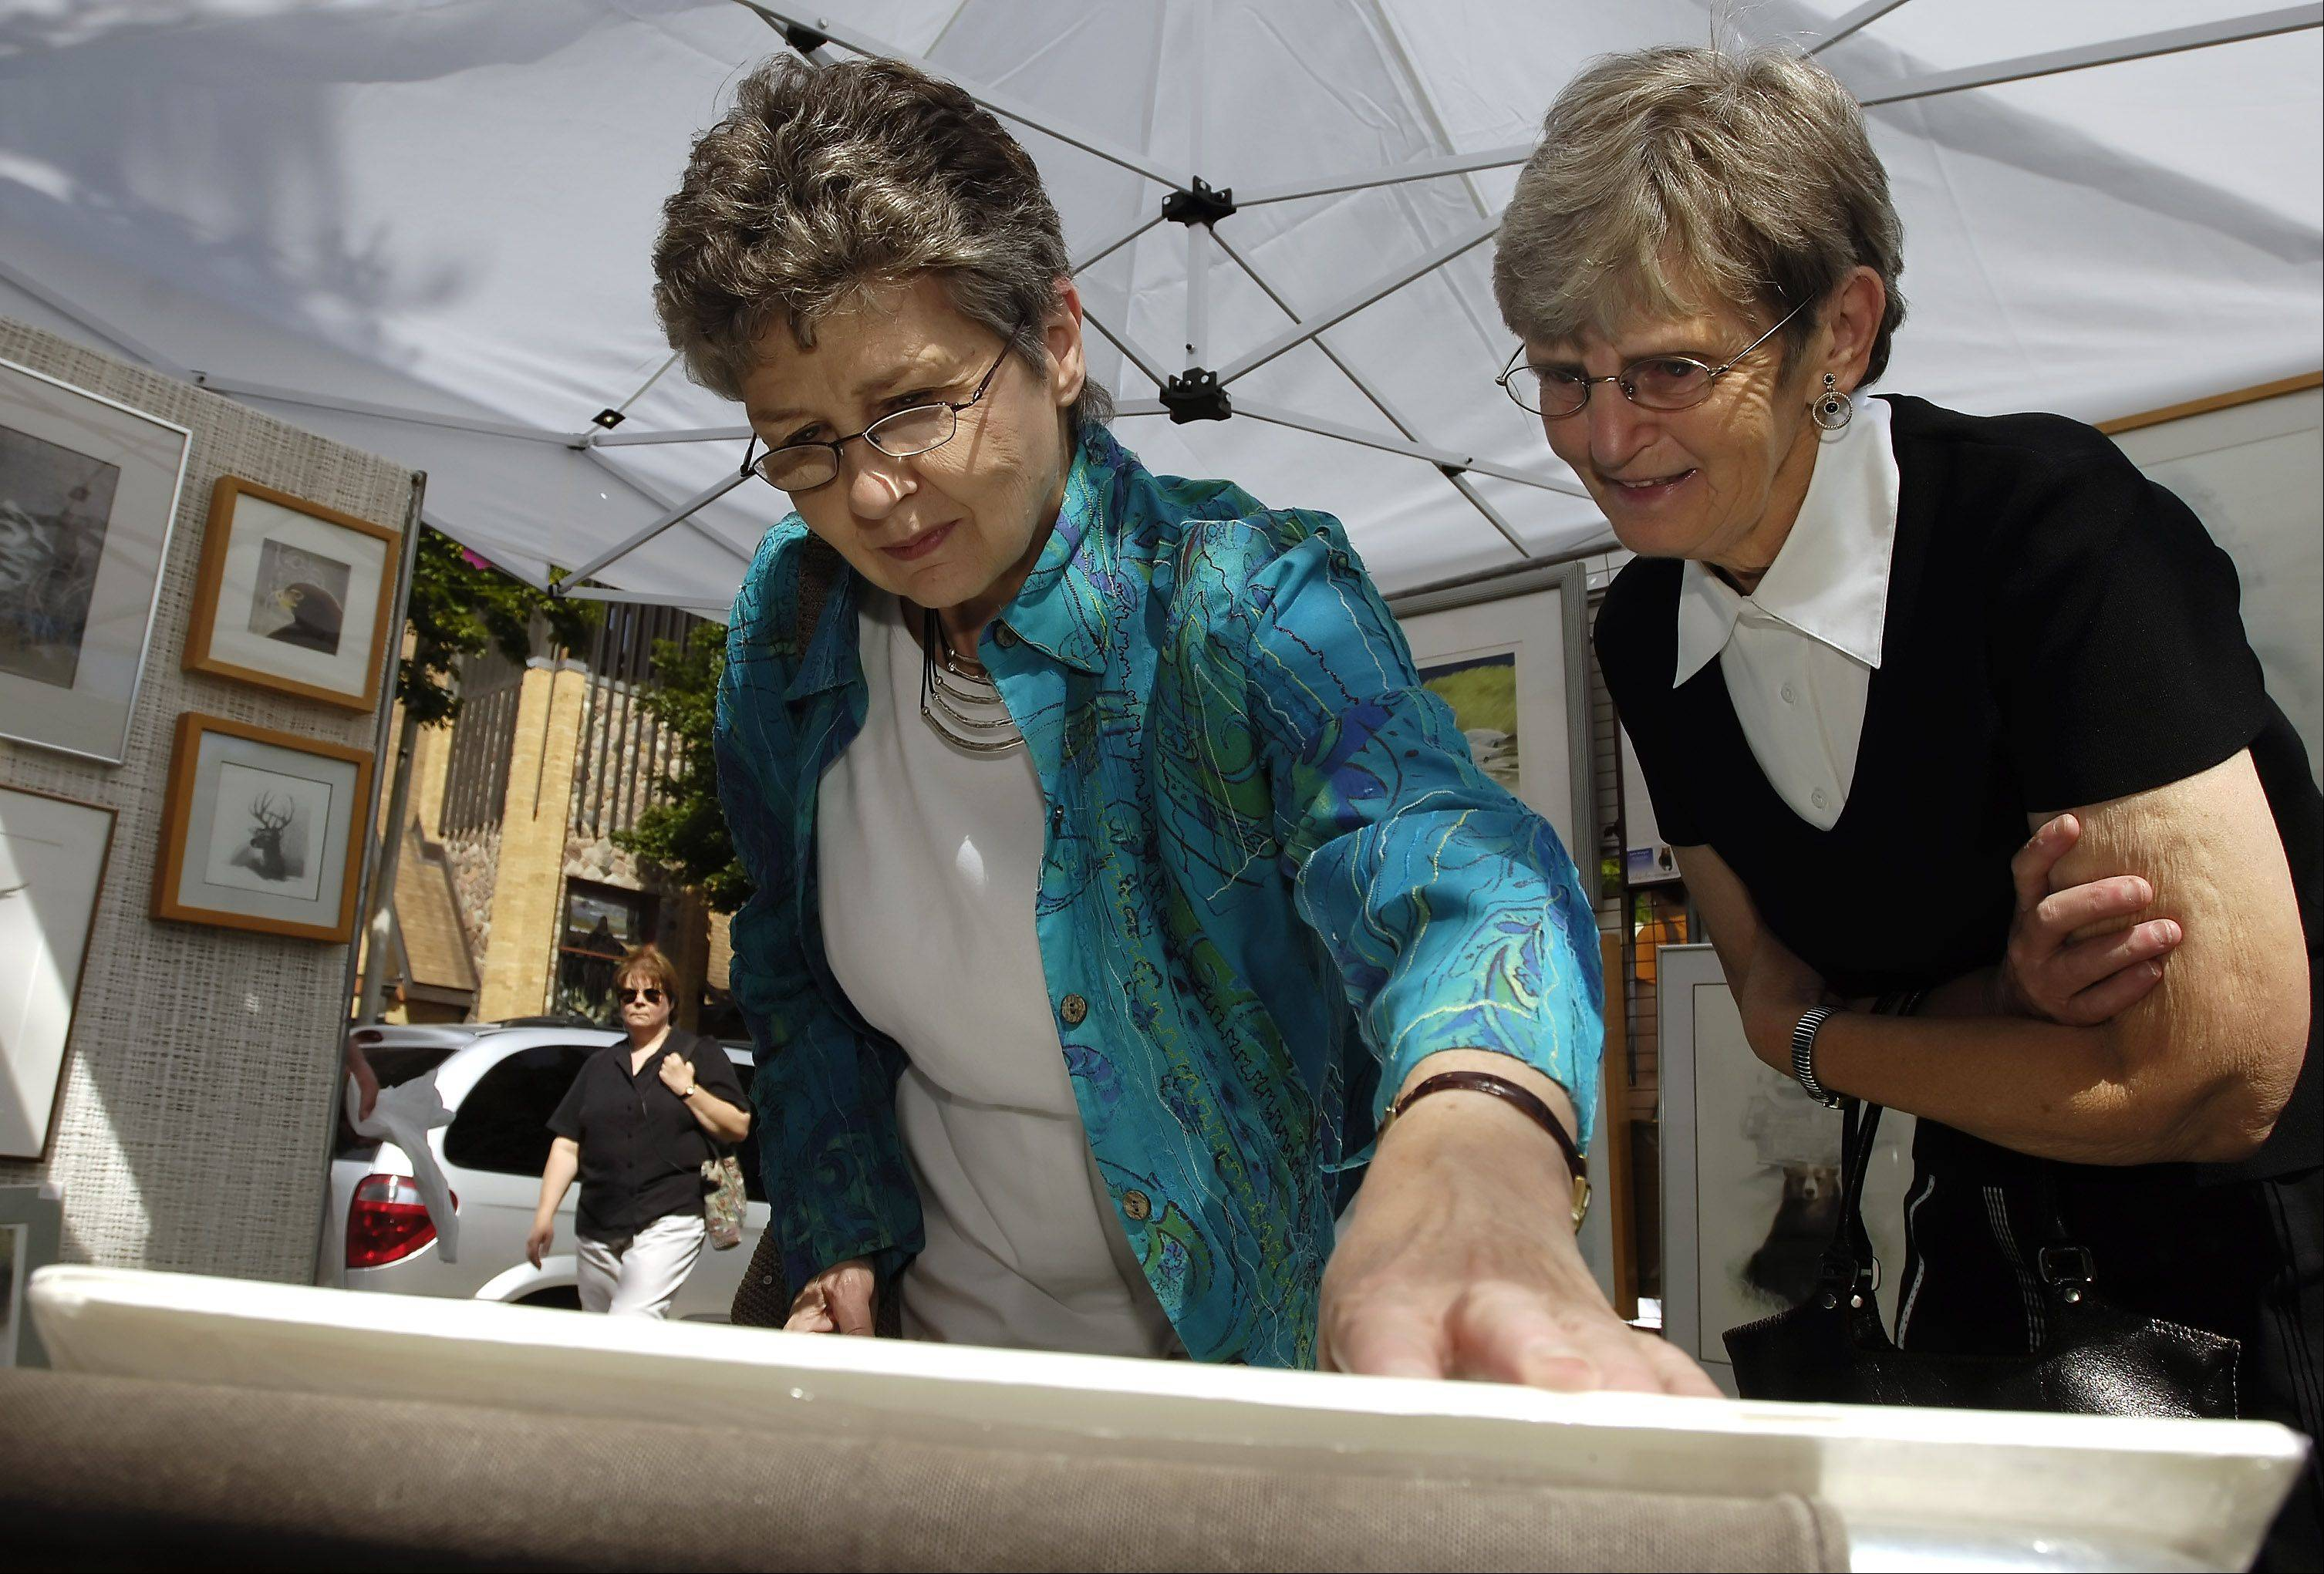 Kay Coyne and Grace Wagner of Prospect Heights look over the art work of Sylvia Westgard while at Arlington Heights' A Walk in the Park several years ago.